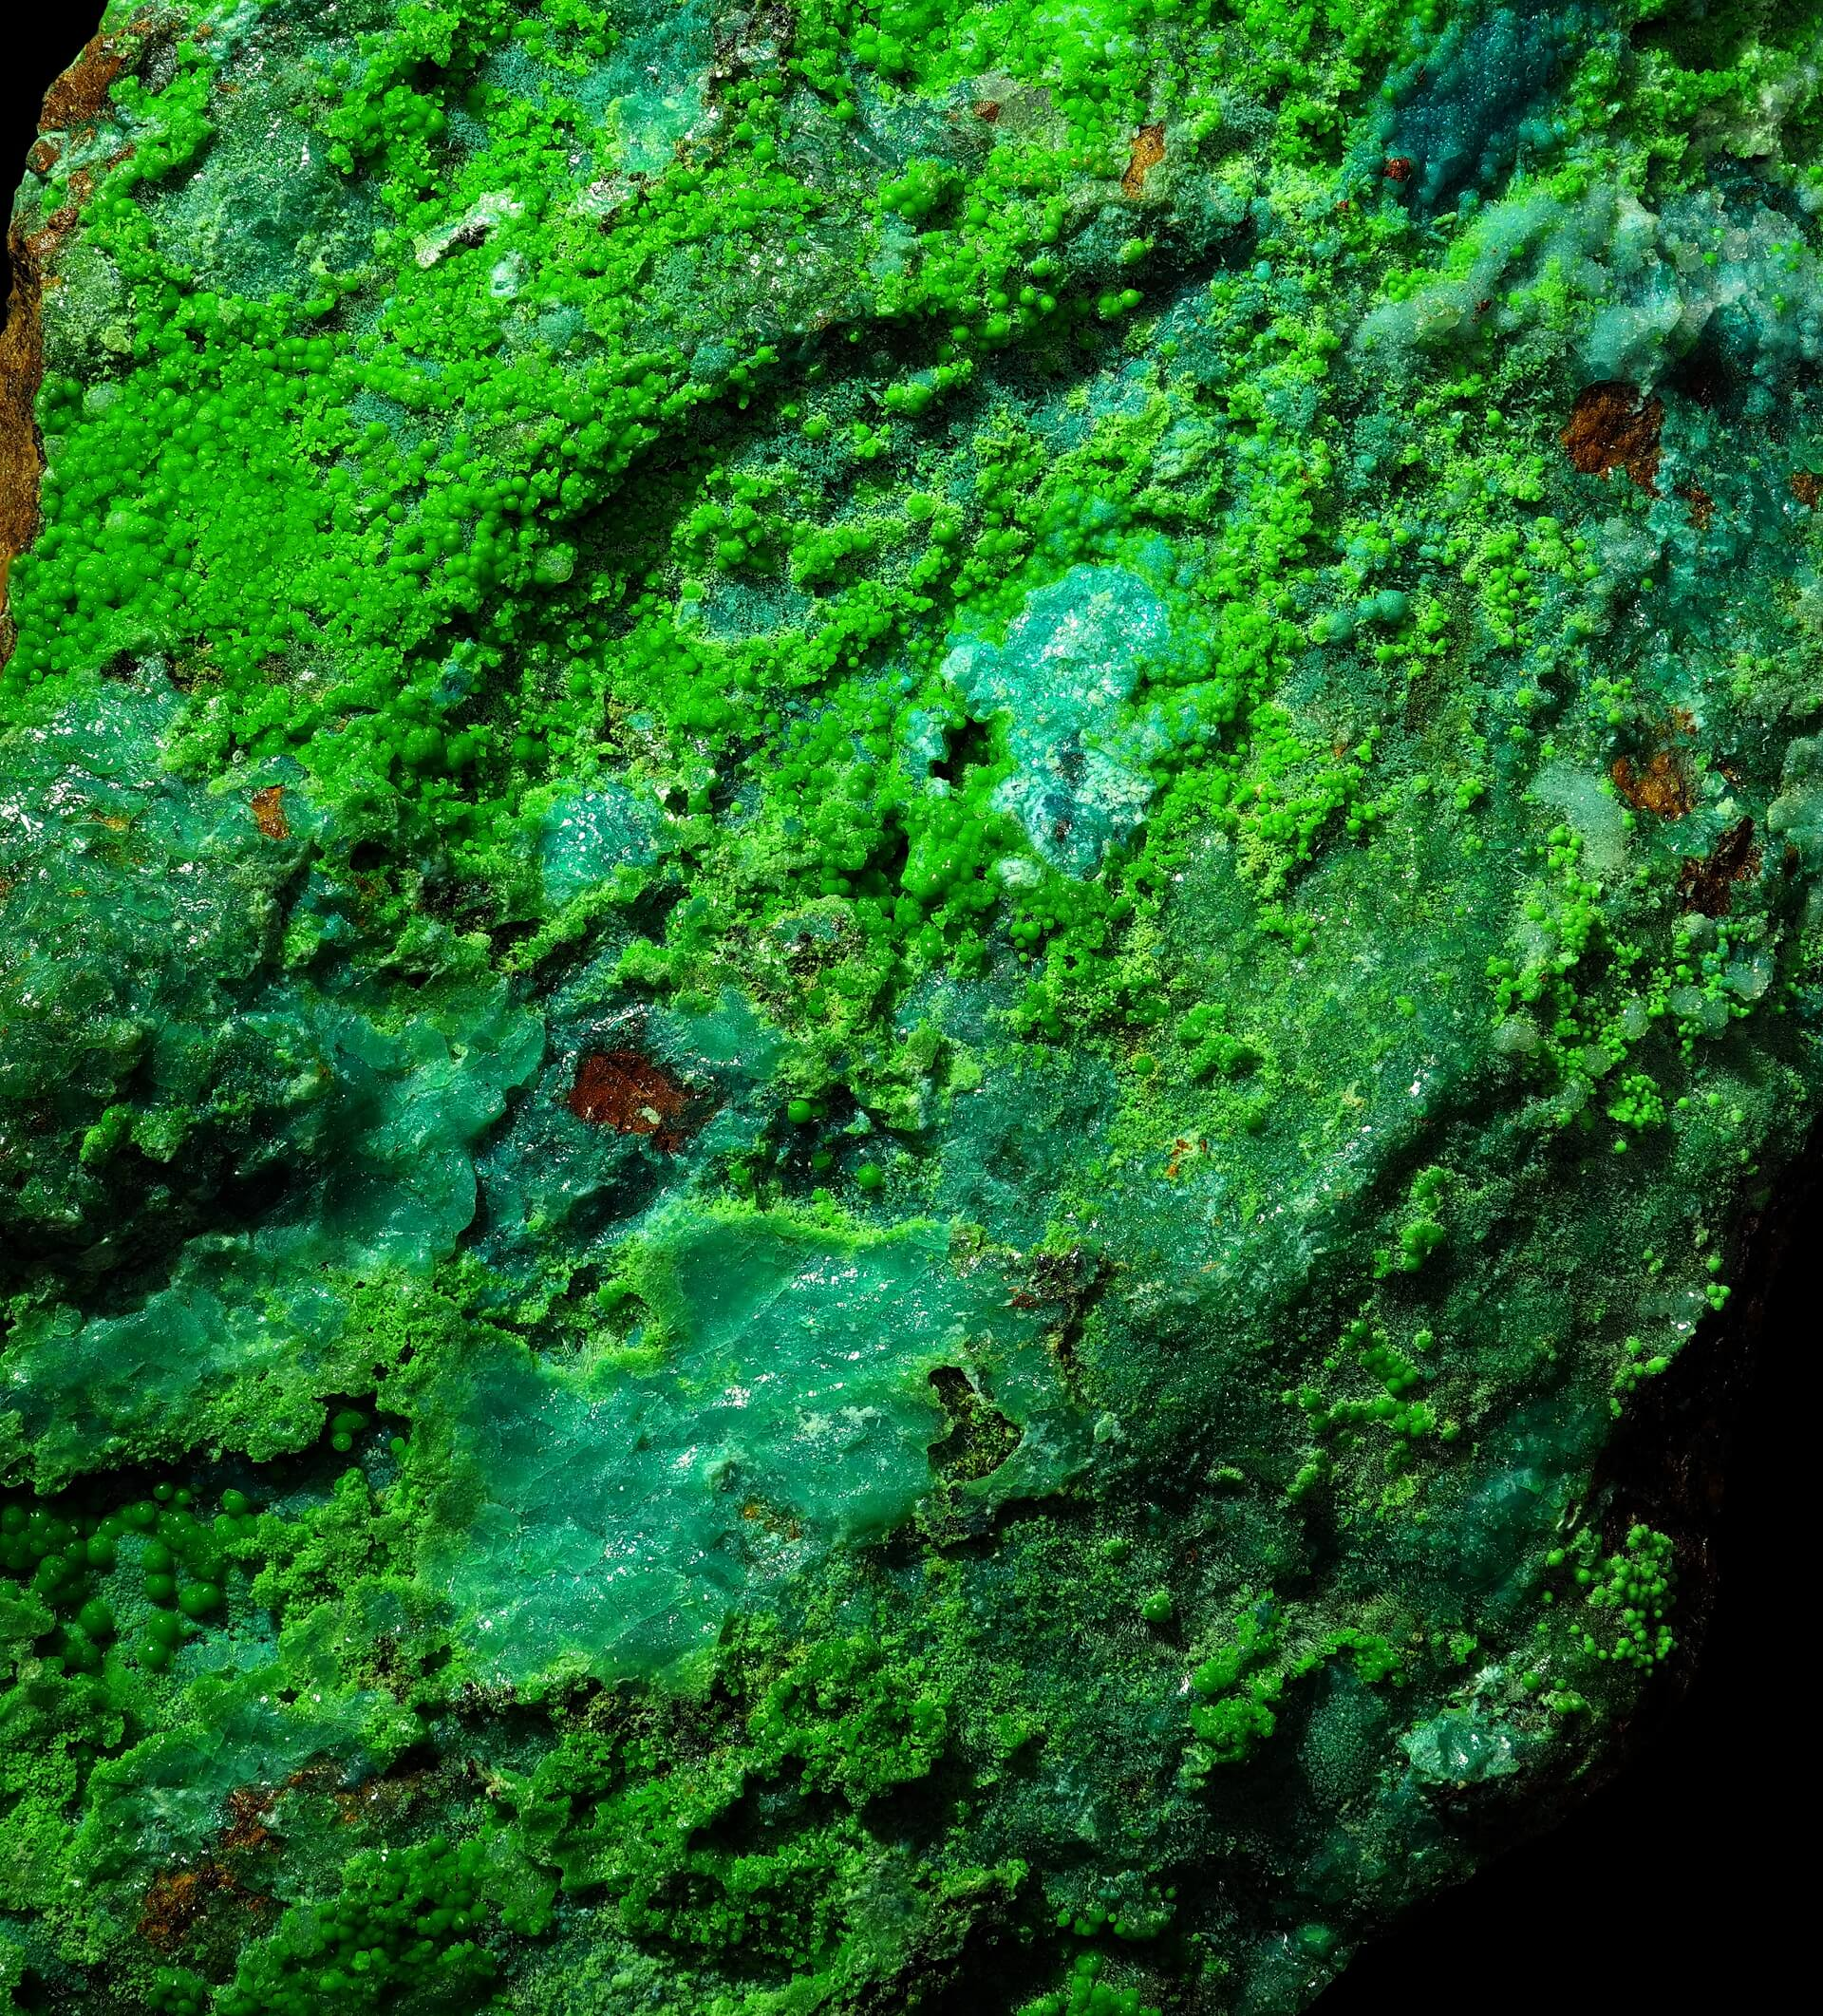 Rich green Conichalcite balls almost completely cover a reddish Cuprite matrix, with minor flat Chrysocolla patches. Small areas of fibrous Mixite are also present.